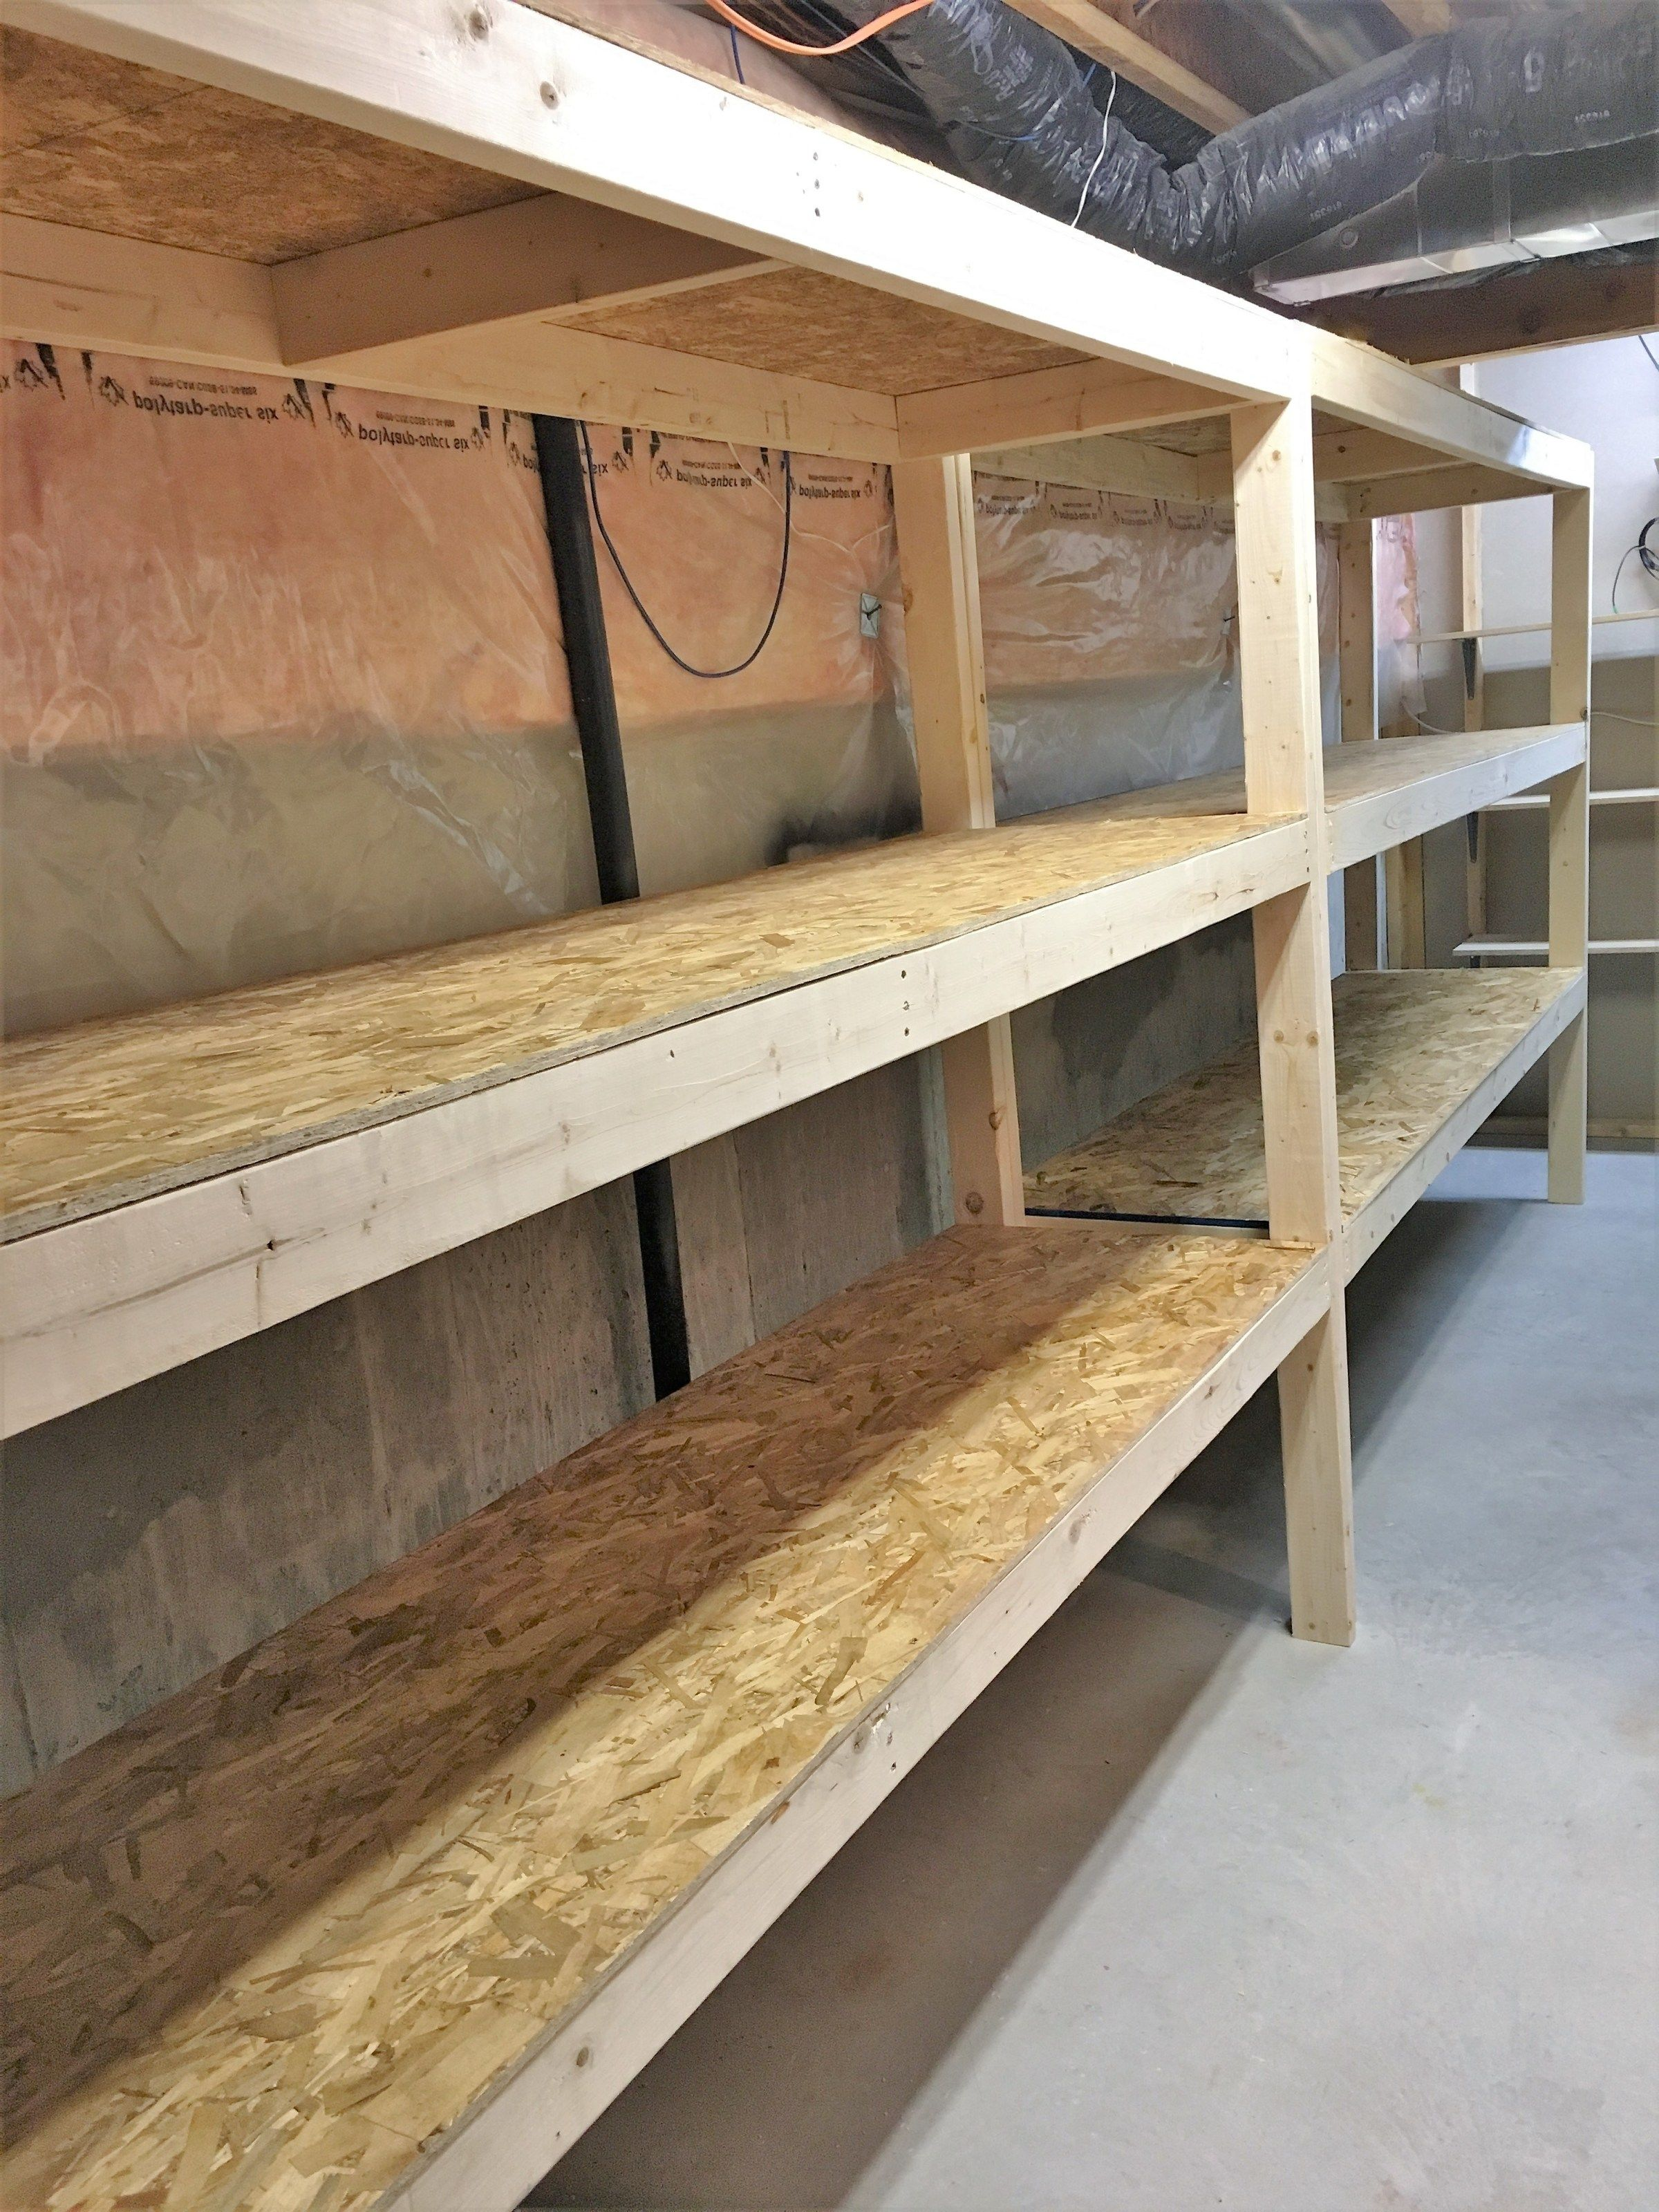 Diy Storage Easy Extra Space Storage Shelves Making Things Is Awesome Diy Storage Shelves Wooden Garage Shelves Wood Storage Shelves